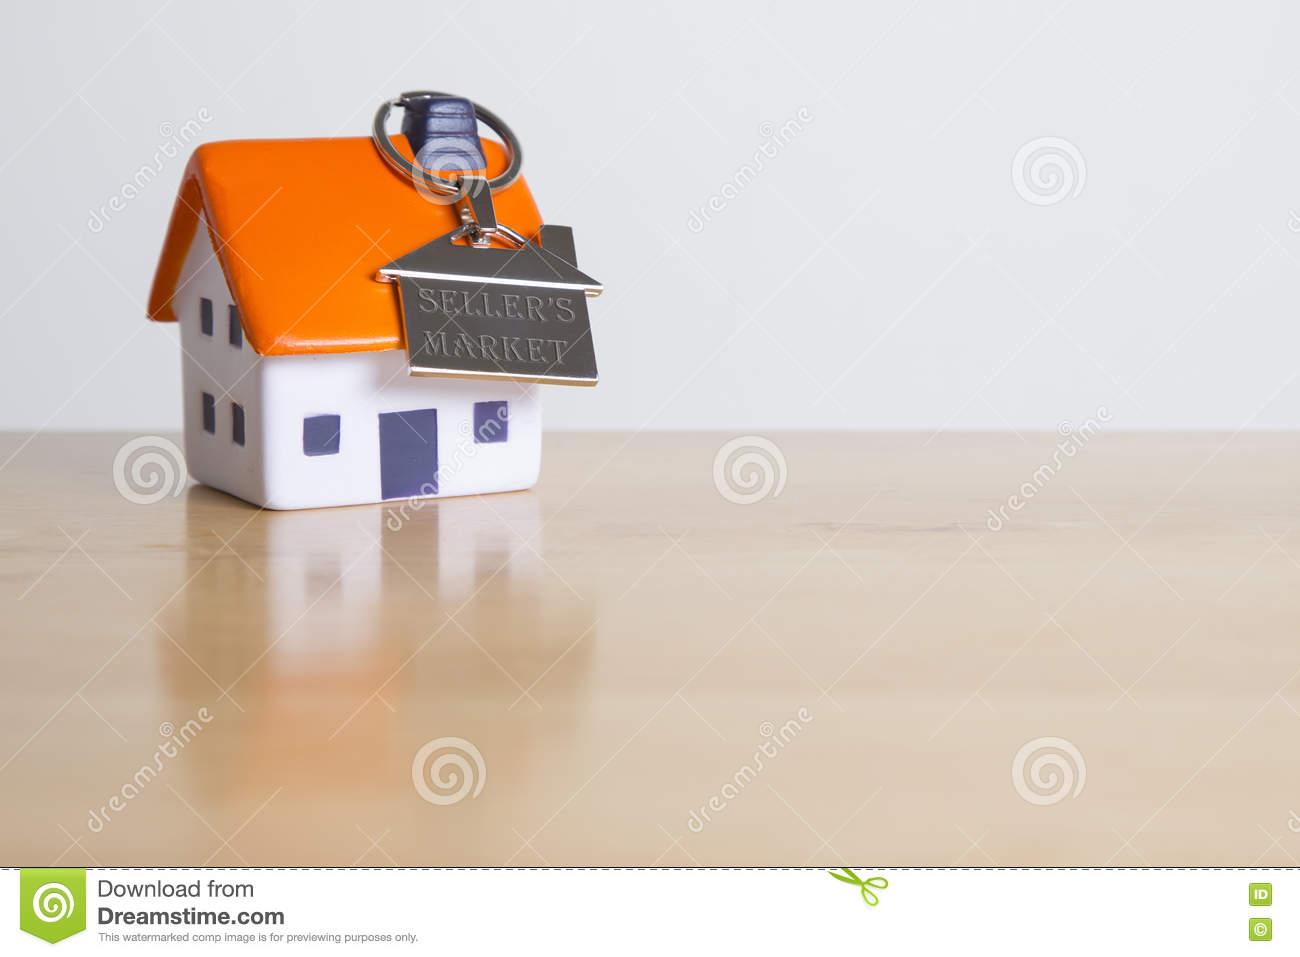 Ideal time to sell your propert - sellers market